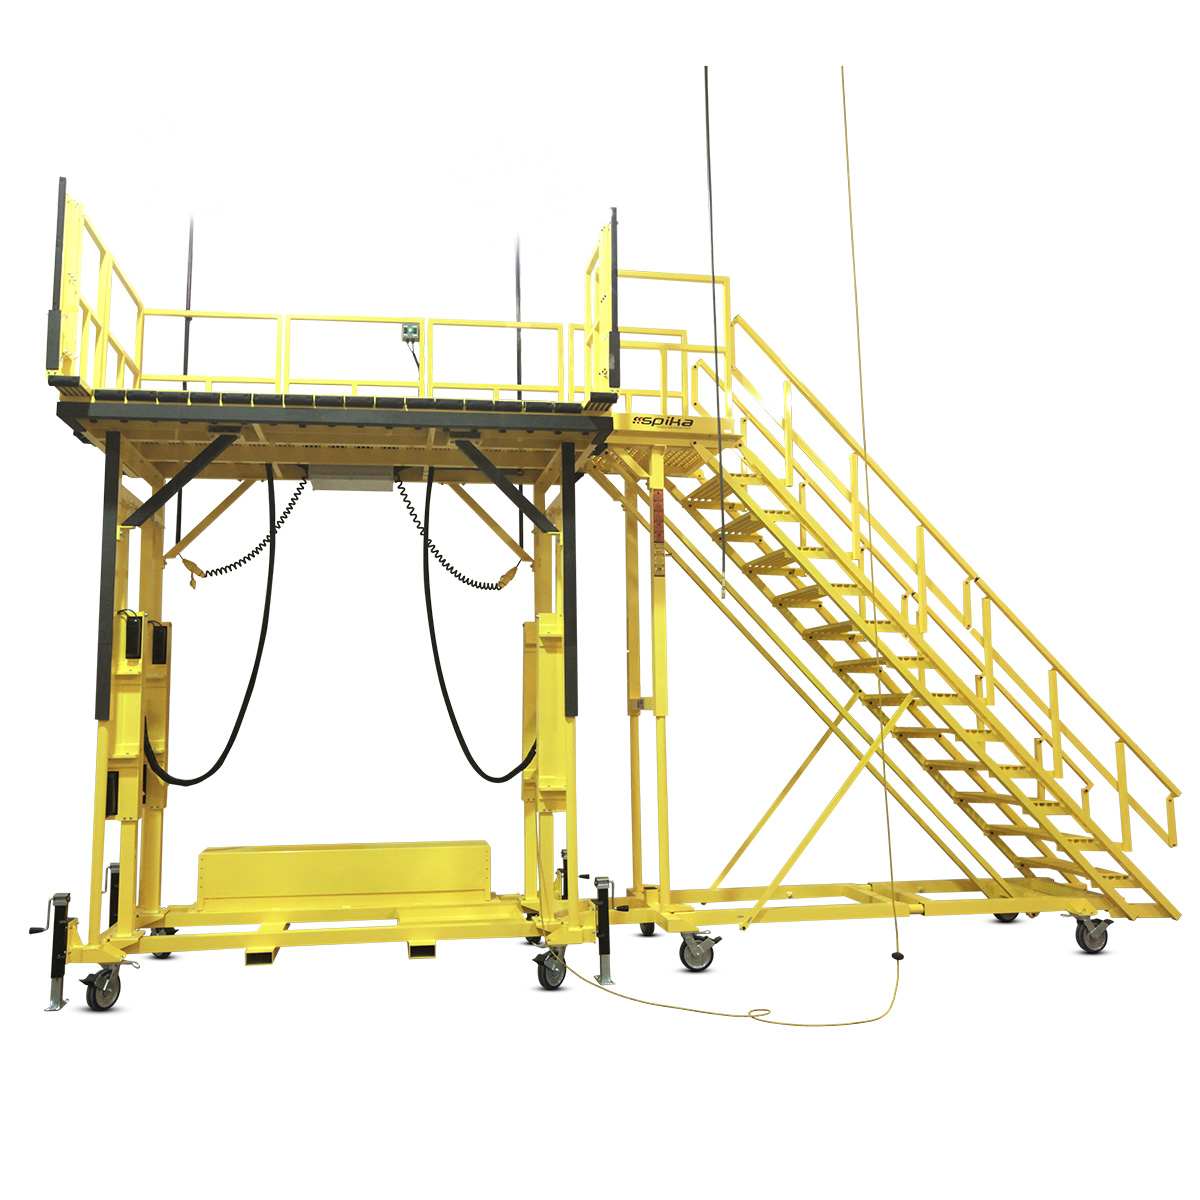 EC-725 | H225-M Helicopter – Daily Maintenance Stands Rust-resistant, UV protected powder coating in custom colors for OSHA compliant portable, aluminum work platforms.